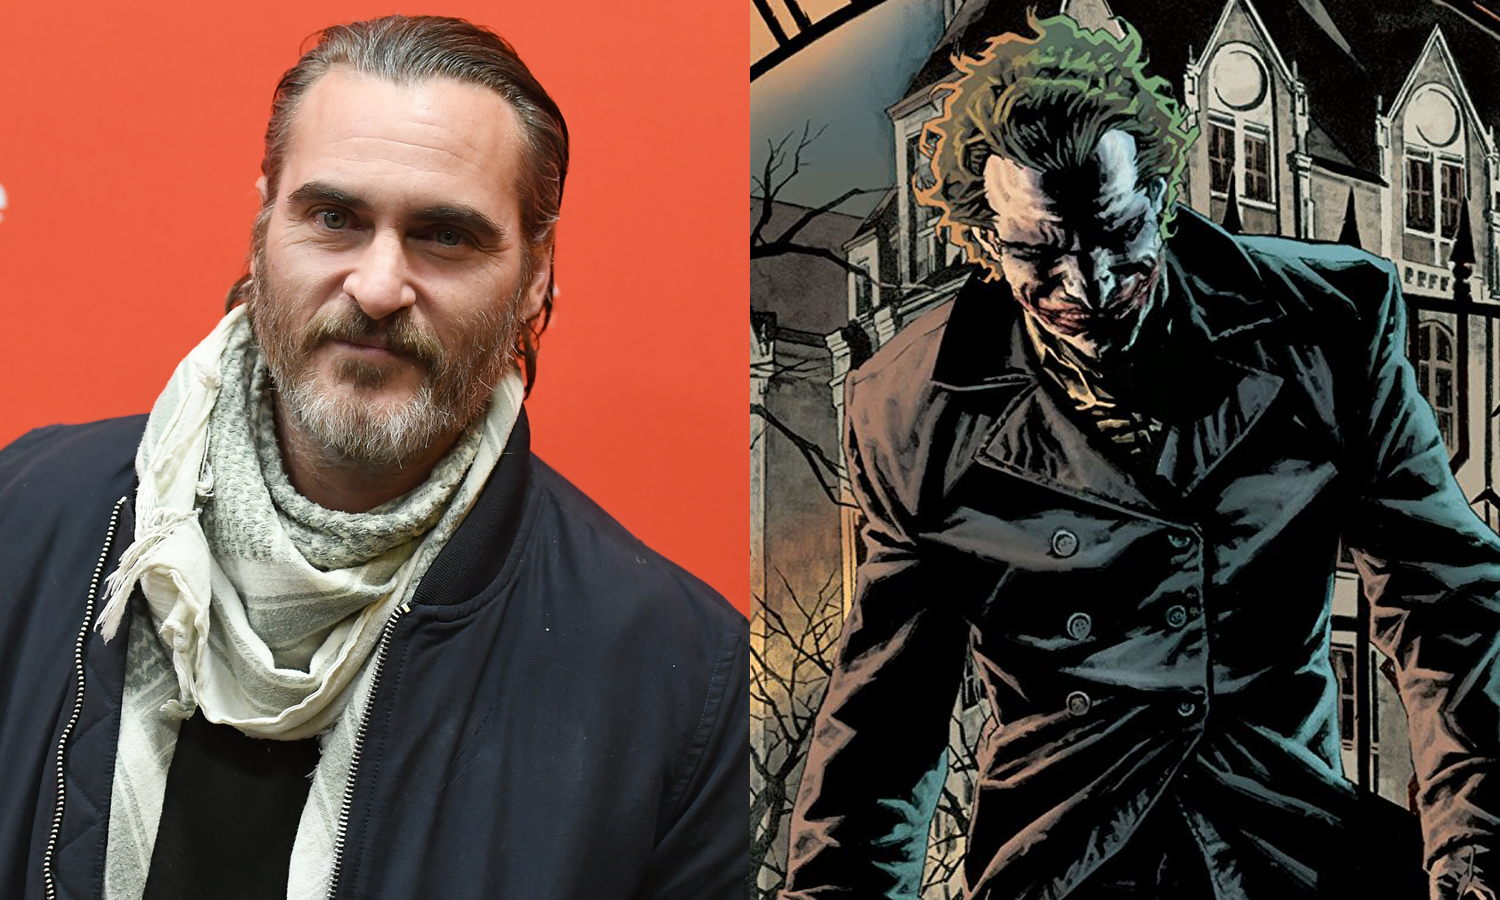 Joaquin Phoenix will play Batman villain The Joker in standalone DC movie